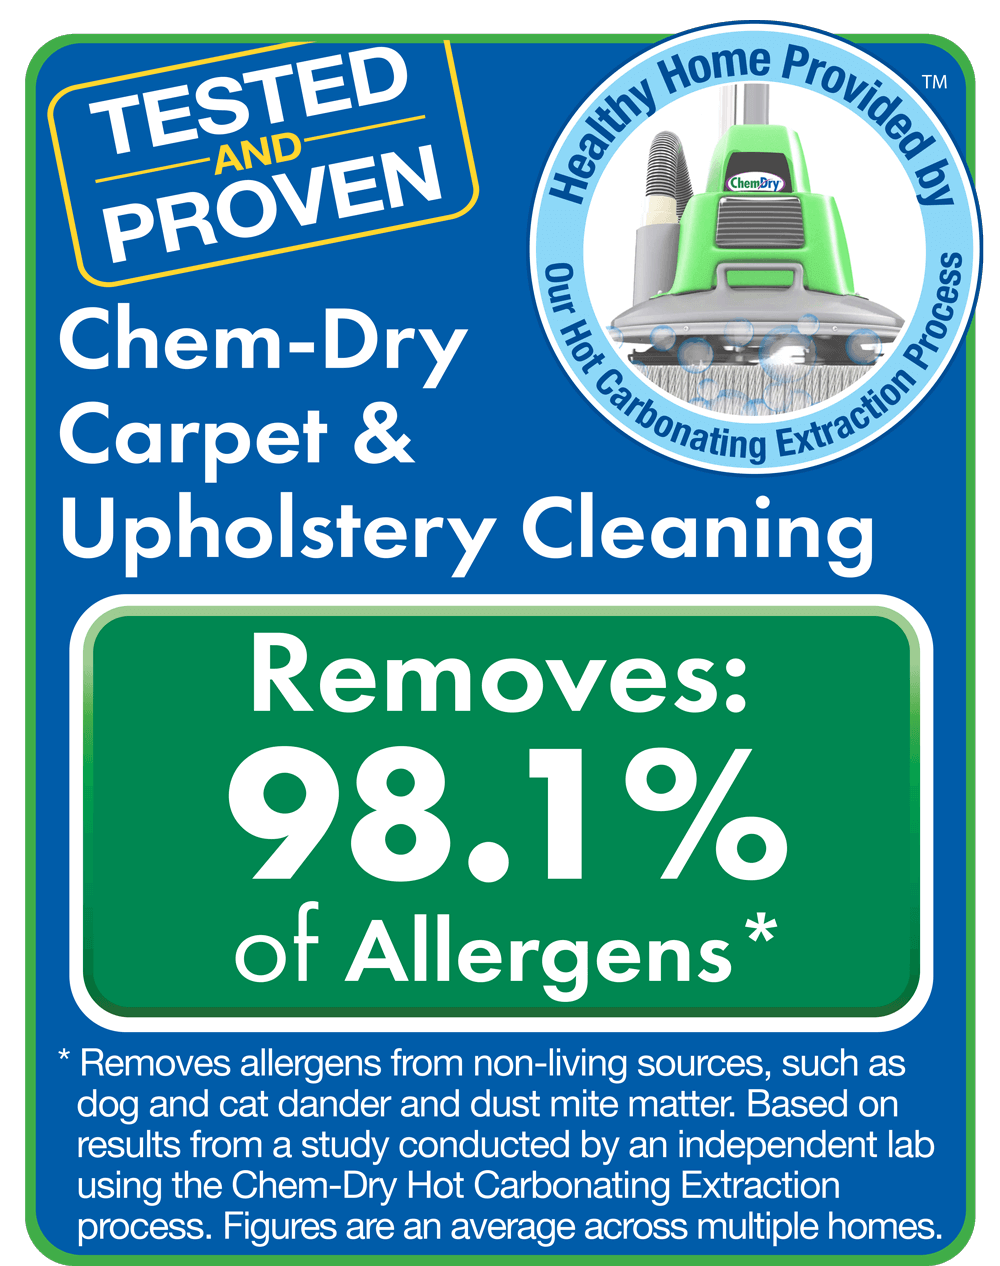 Chem Dry's upholstery cleaning service removes 98% of allergens and 89% of bacteria from upholstery